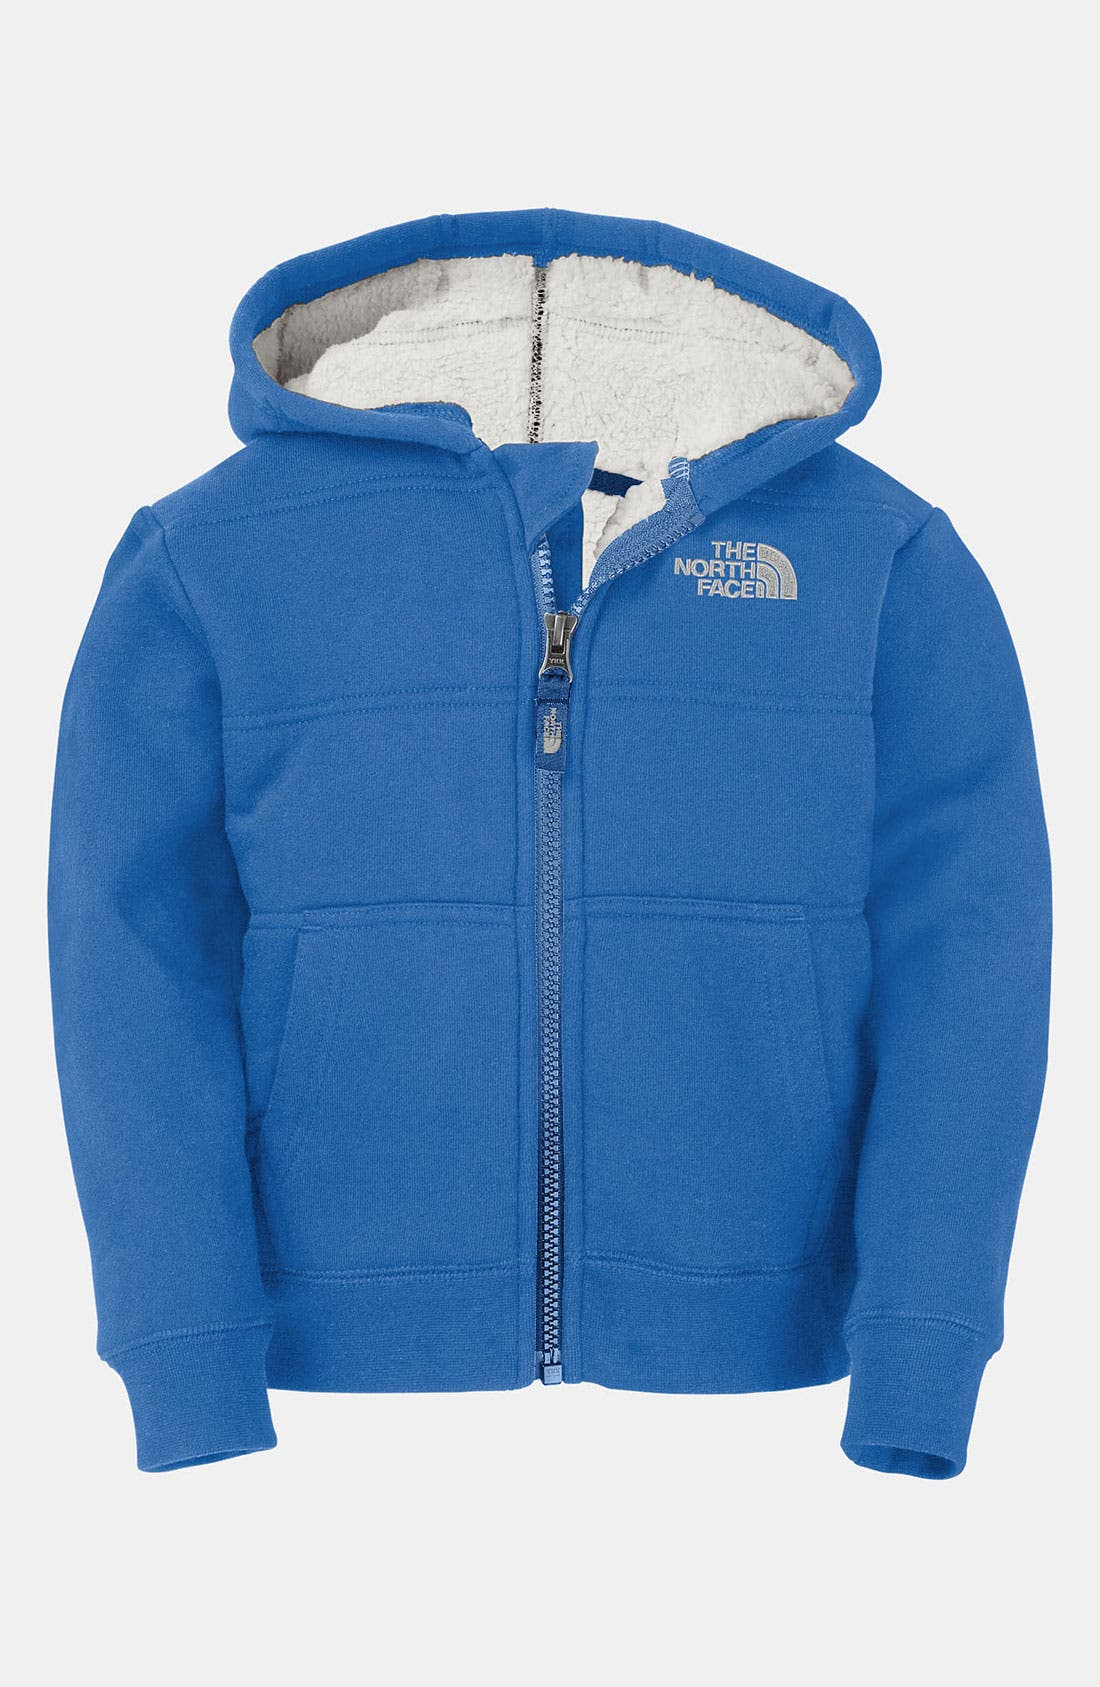 Main Image - The North Face 'Foreverlong' Hoodie (Toddler)